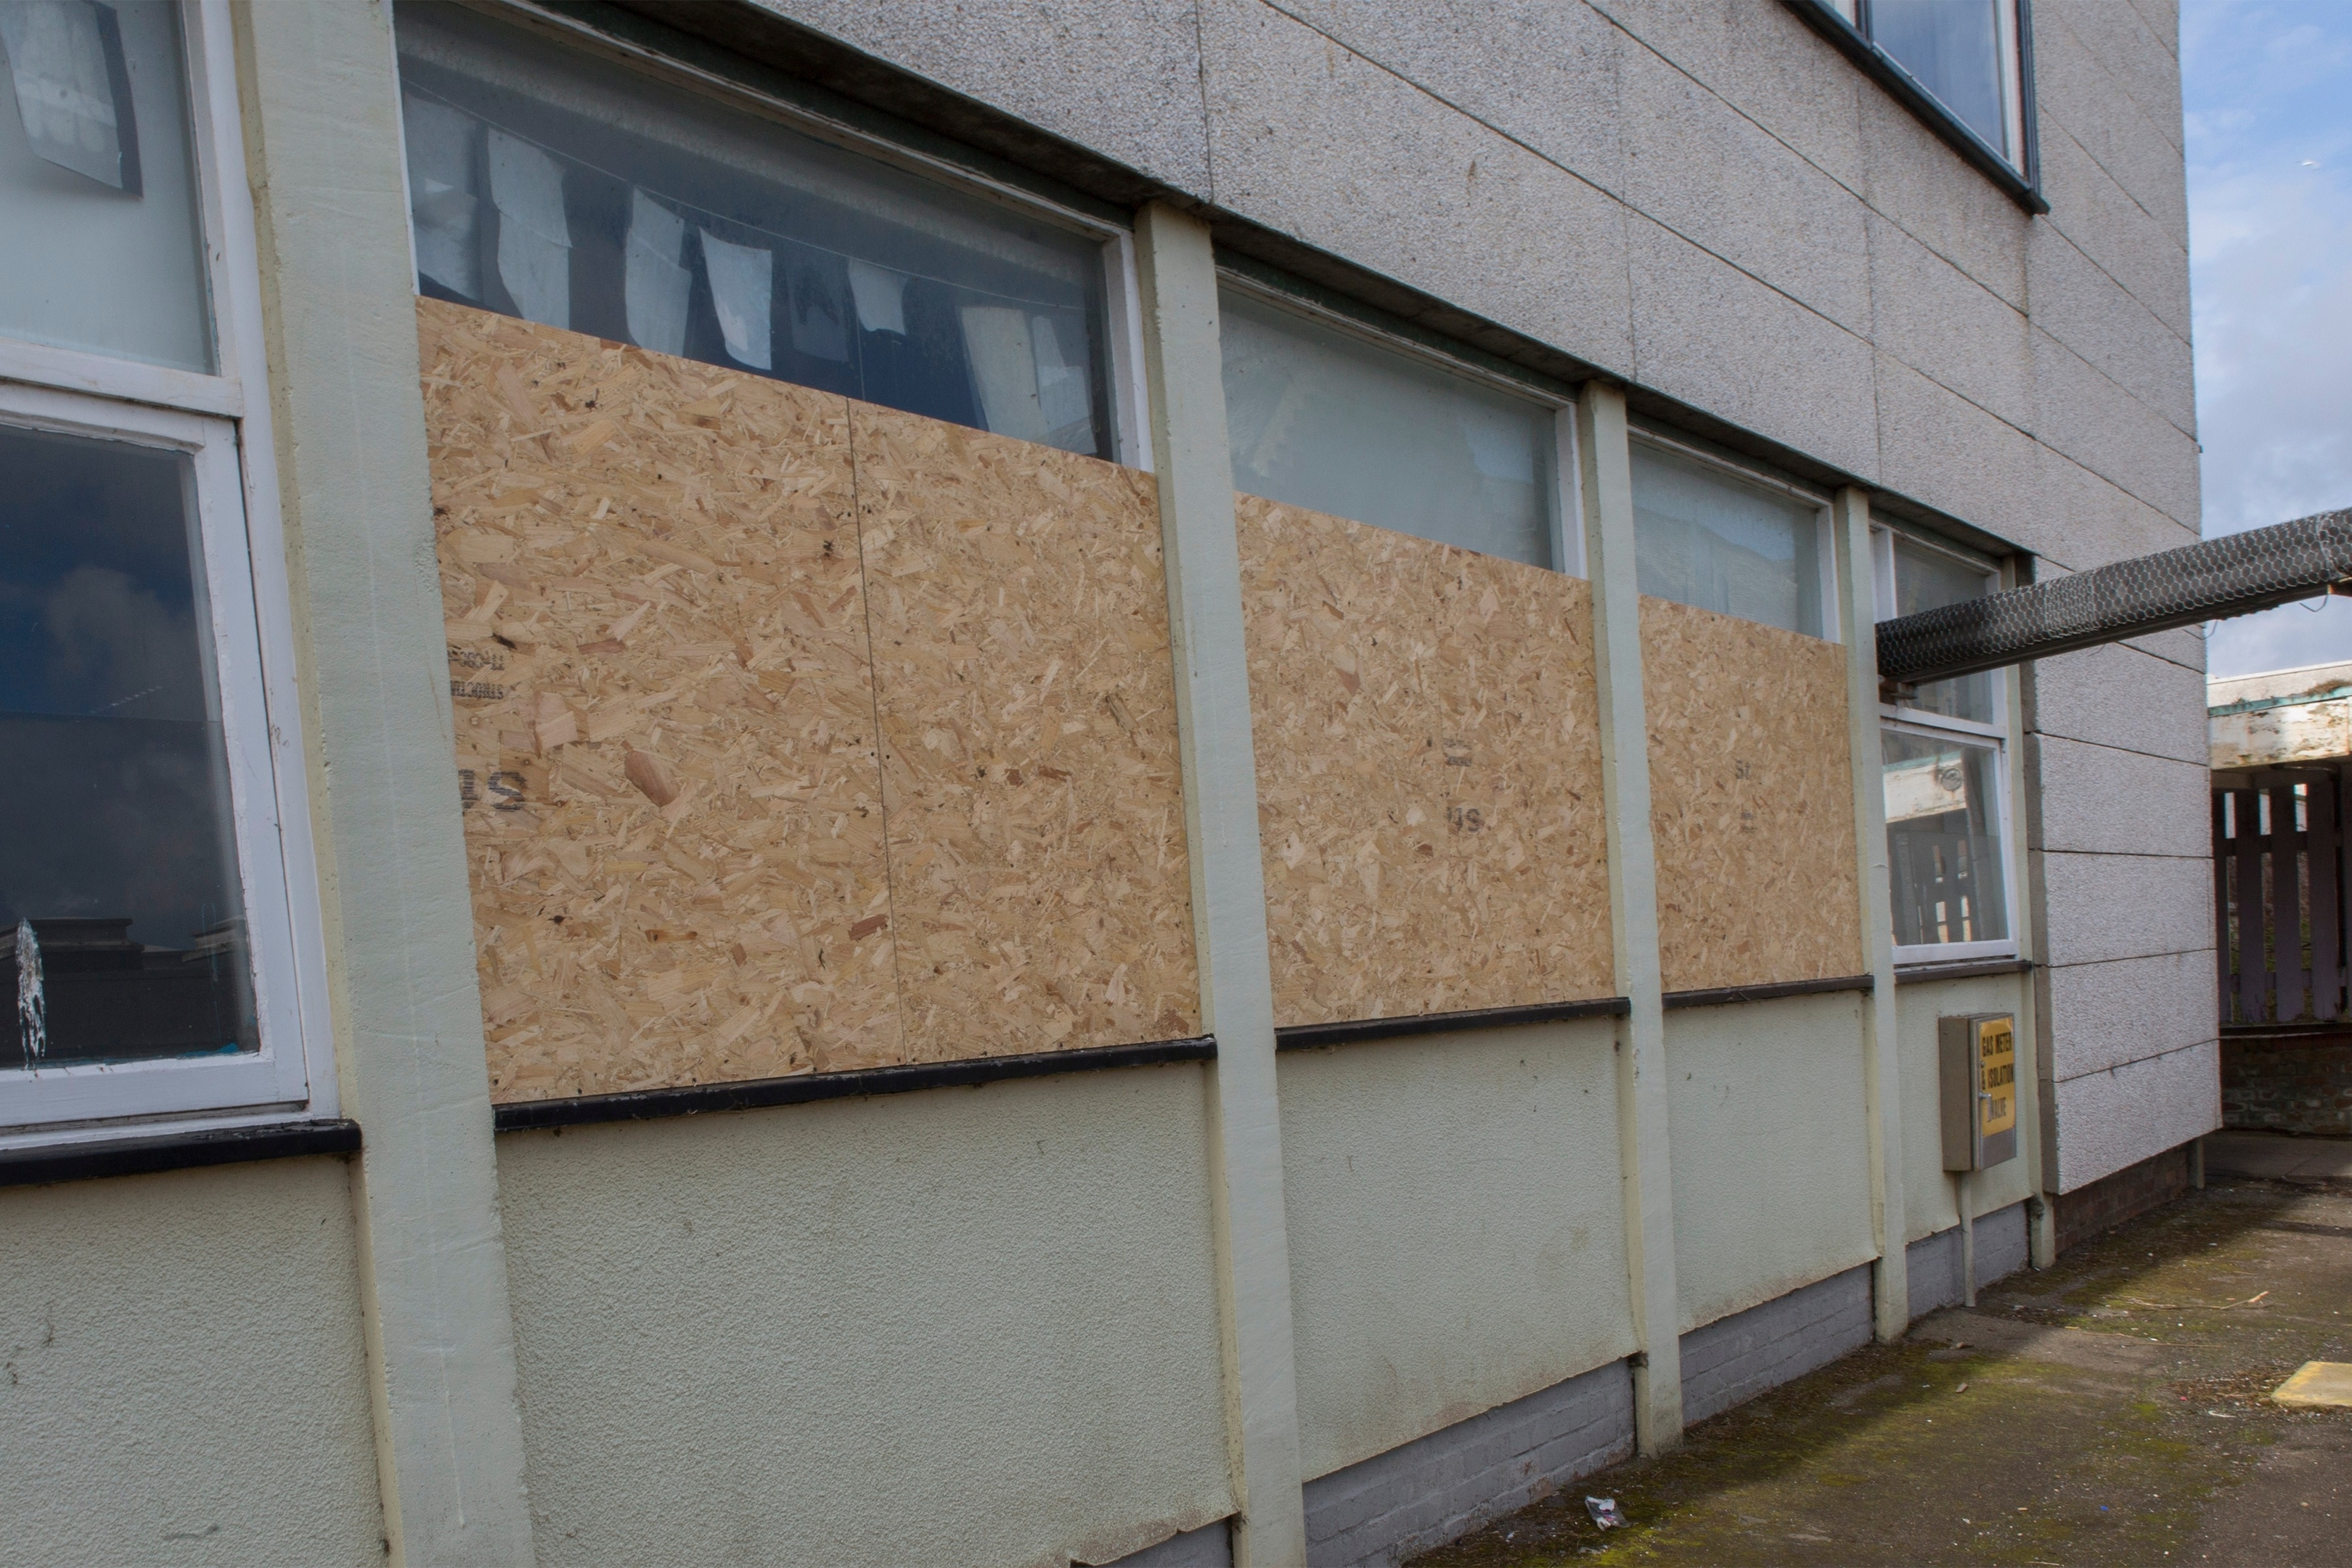 Boarded up windows in one of the blocks at the rear of Wick High School.